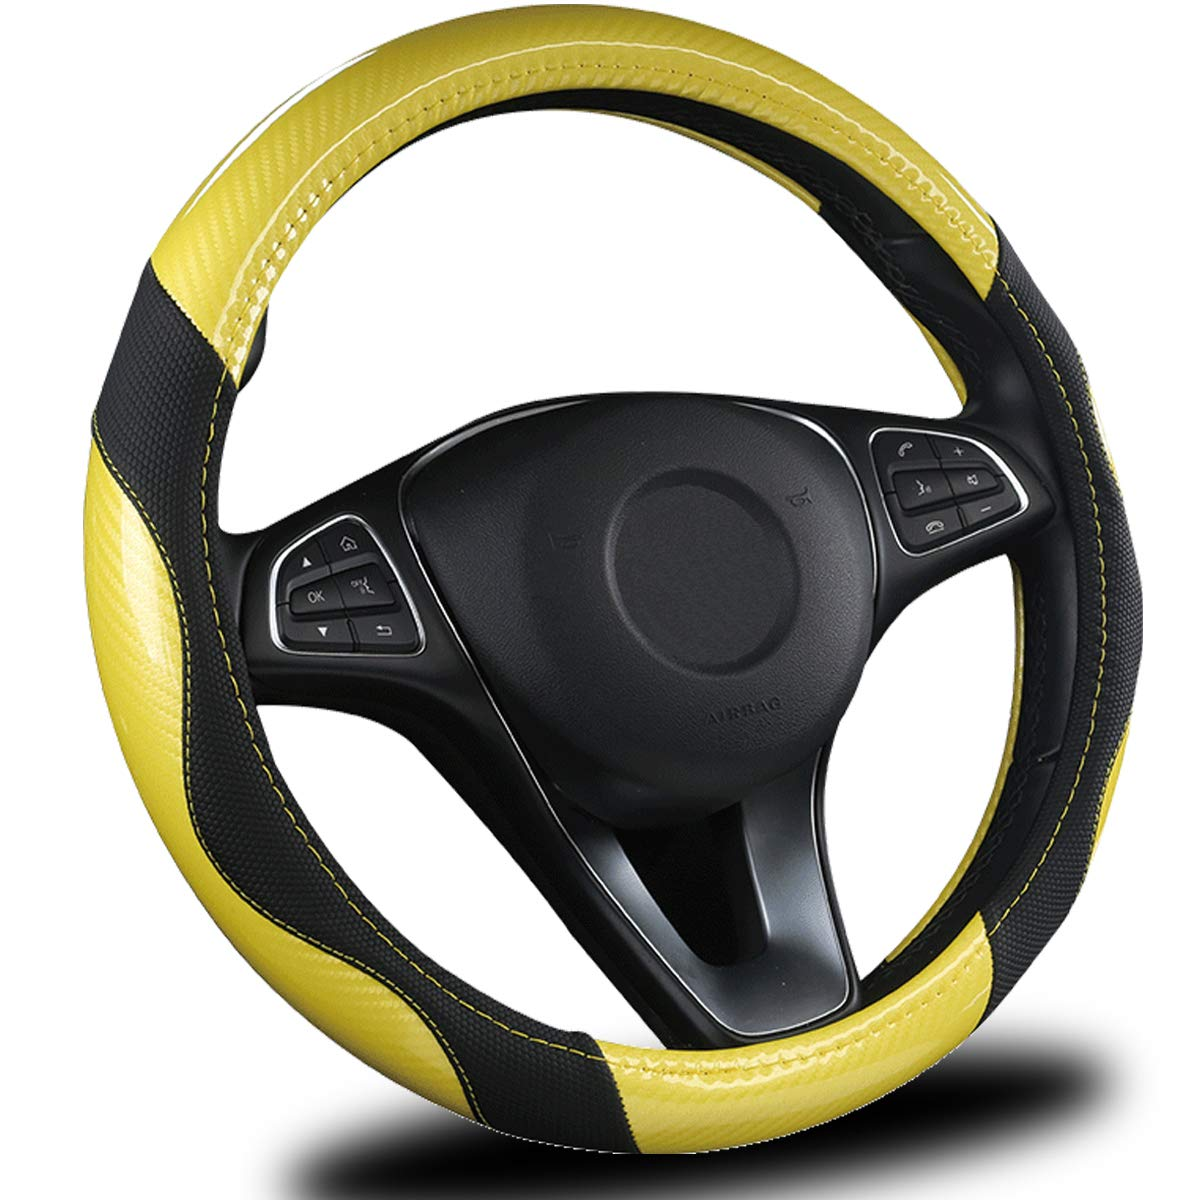 AmeriLuck Steering Wheel Cover for Car, Universal 15 inch, Odorless, Breathable, Anti-Slip, Sporty, Soft and Snug Grip, Carbon Fiber Effect (Yellow   Black)